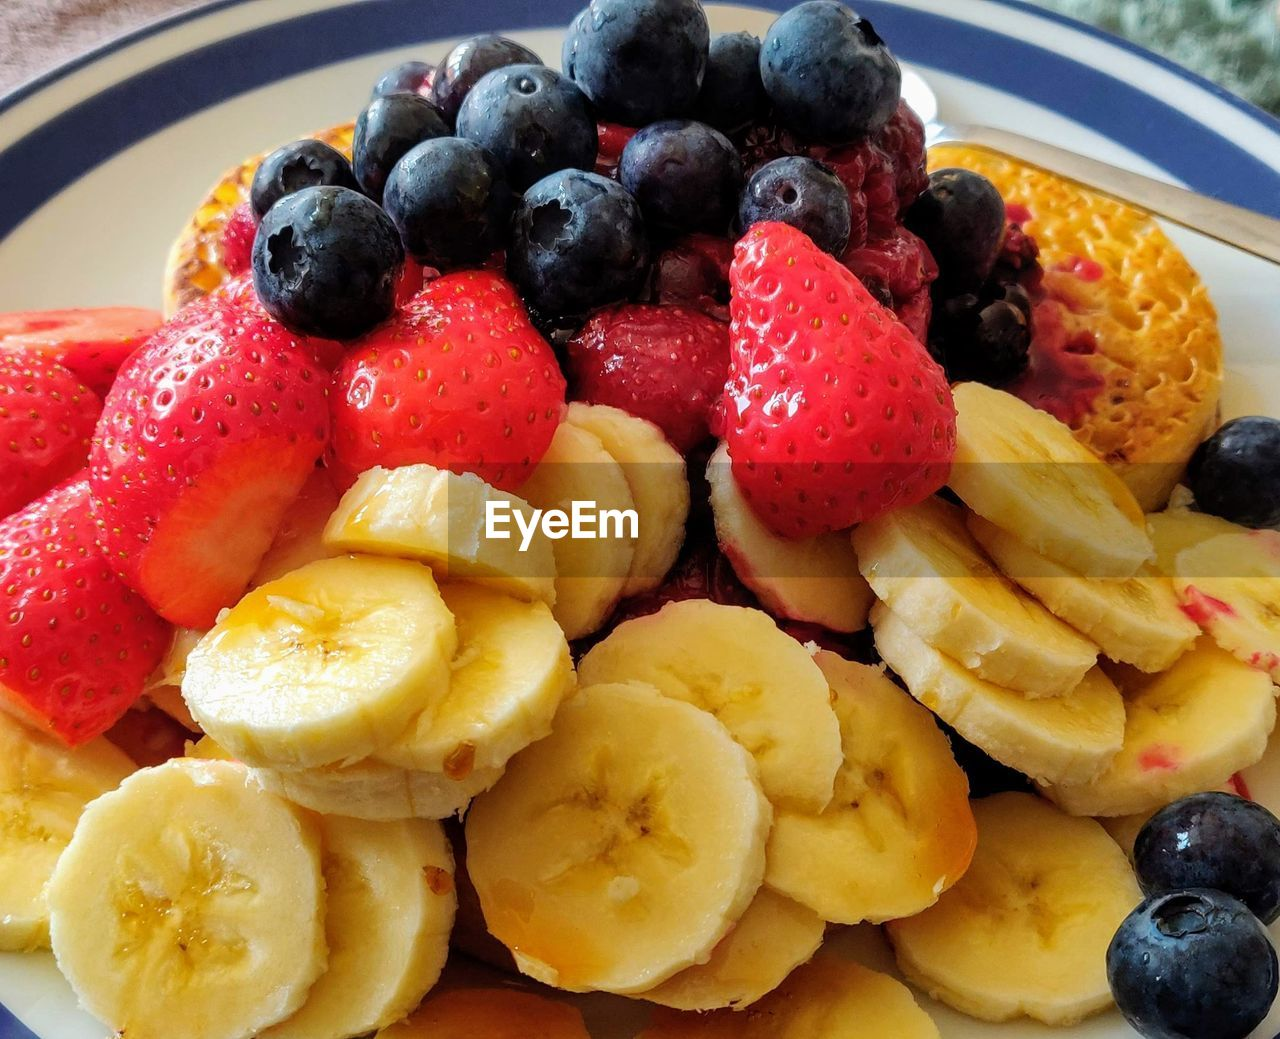 fruit, food, food and drink, healthy eating, berry fruit, freshness, blueberry, wellbeing, strawberry, still life, close-up, no people, ready-to-eat, indoors, raspberry, banana, breakfast, sweet food, plate, indulgence, fruit salad, temptation, ripe, snack